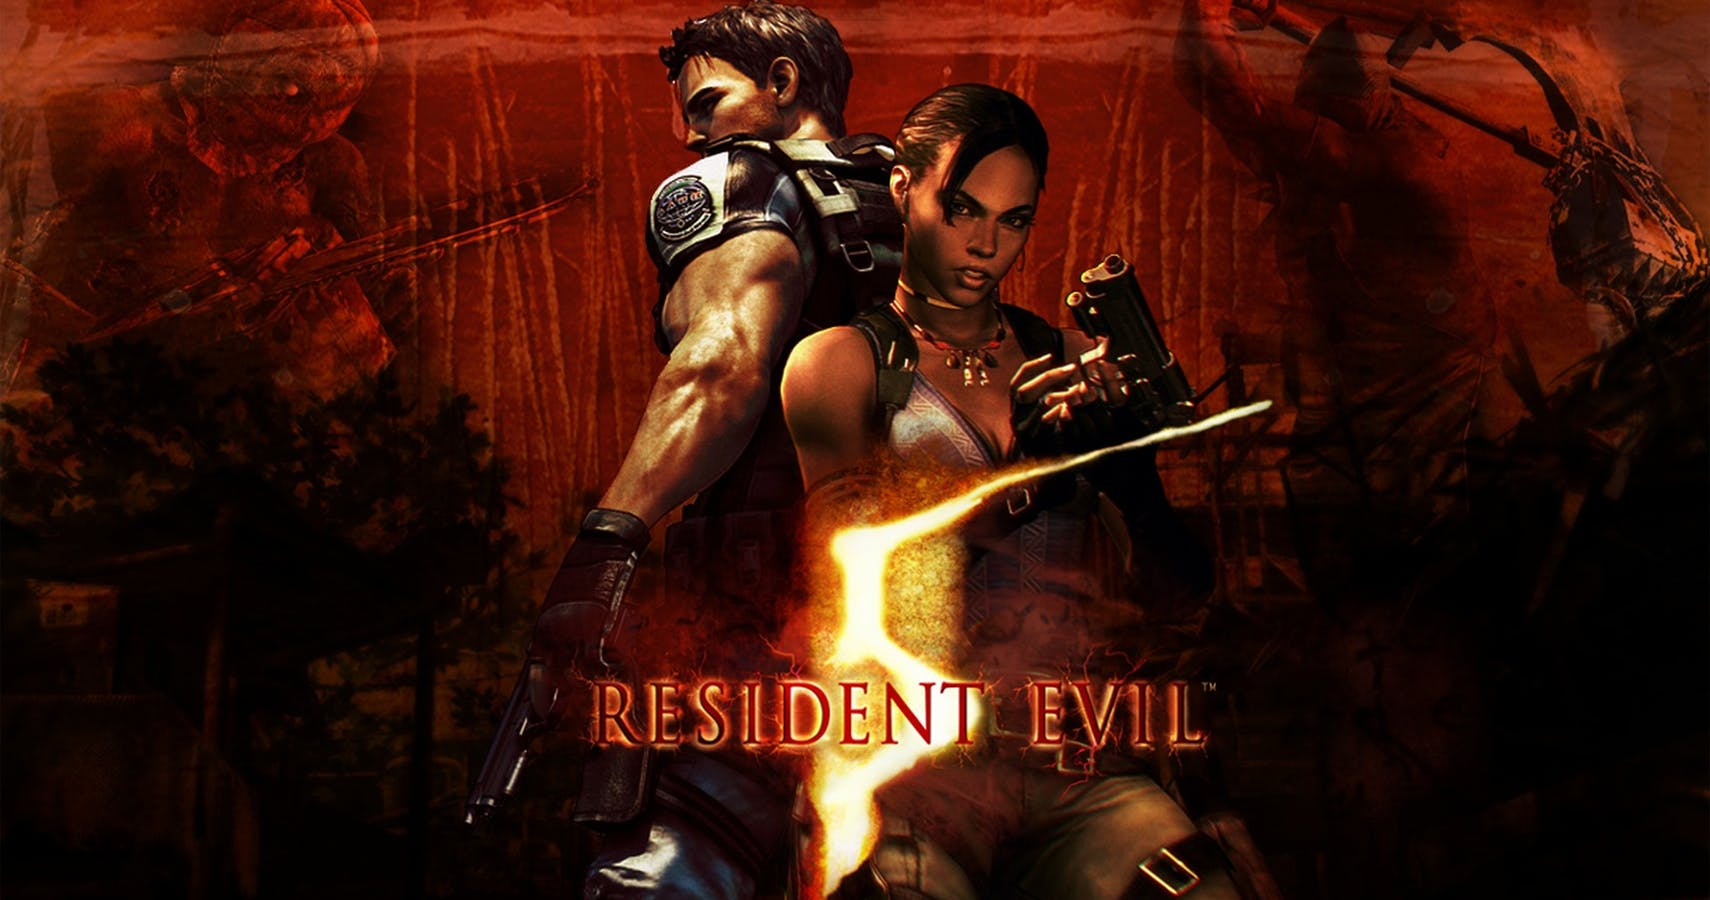 residentevil 5